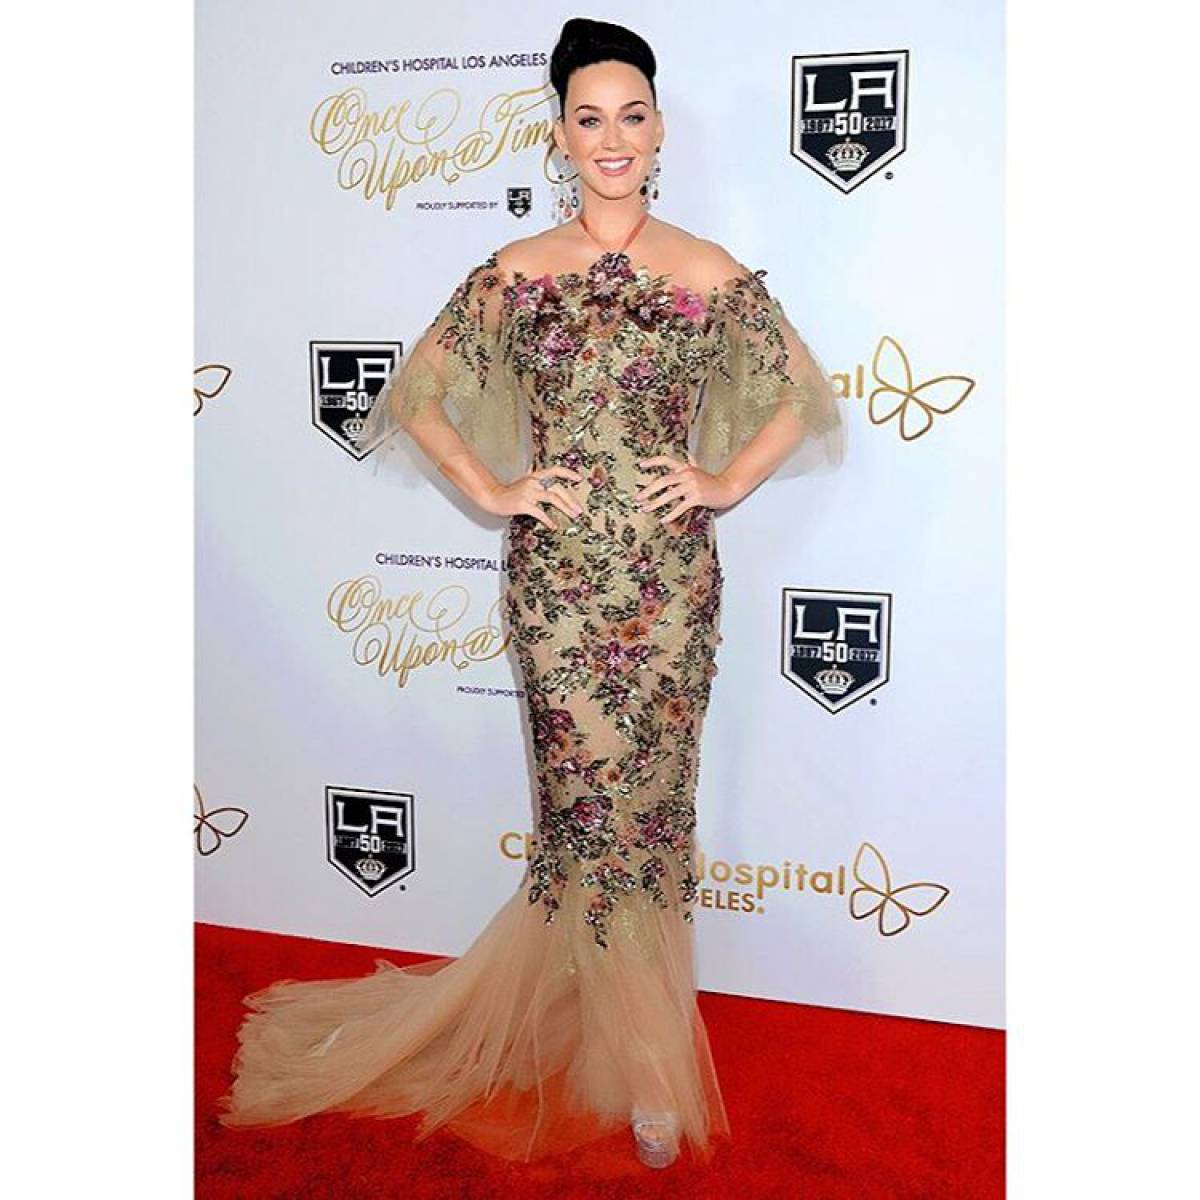 Katy Perry goes blonde for Orlando Bloom\'s birthday - Reality TV World